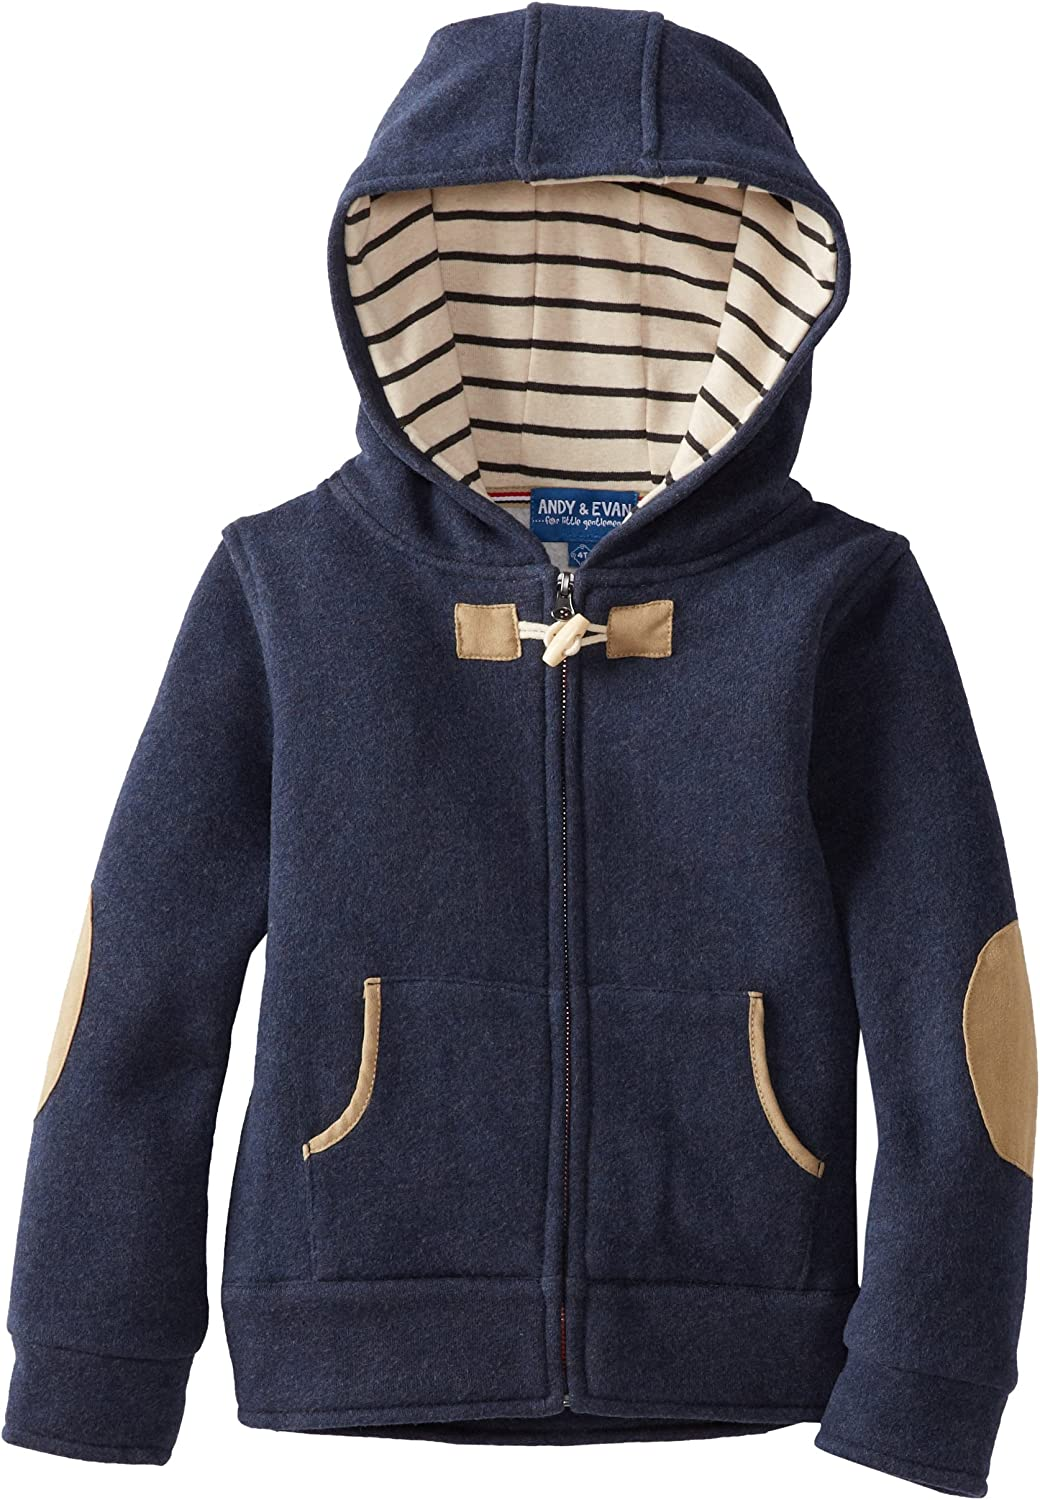 Selling Andy Evan Little Boys' The Hoodie Factory outlet Hardisty